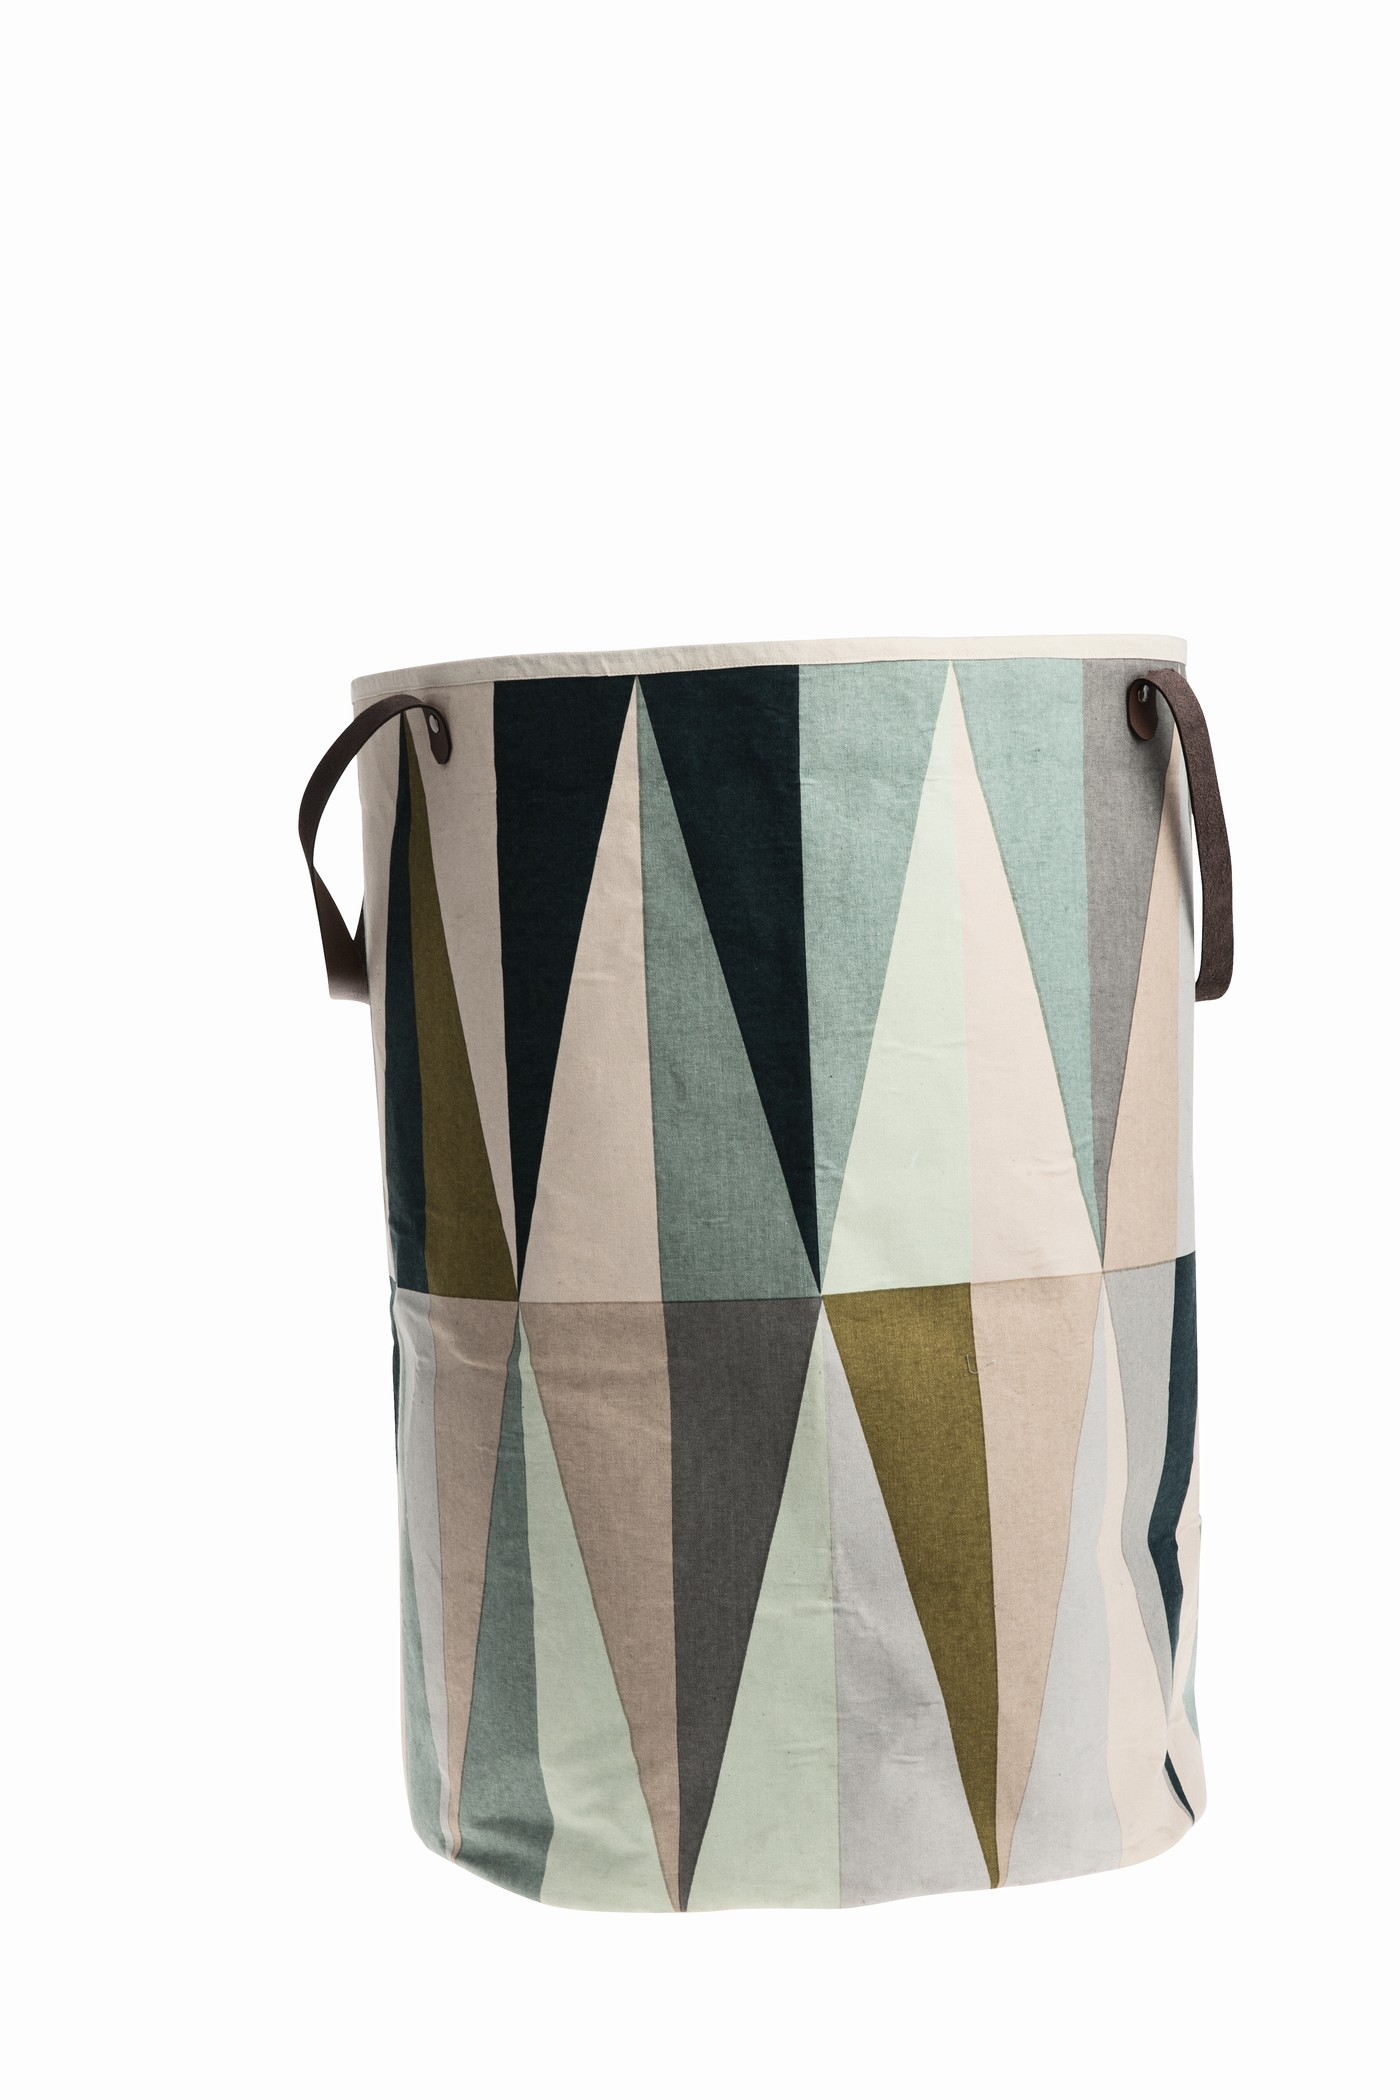 Elegant Laundry Hamper Modern Laundry Baskets Contemporary Clothes Hampers